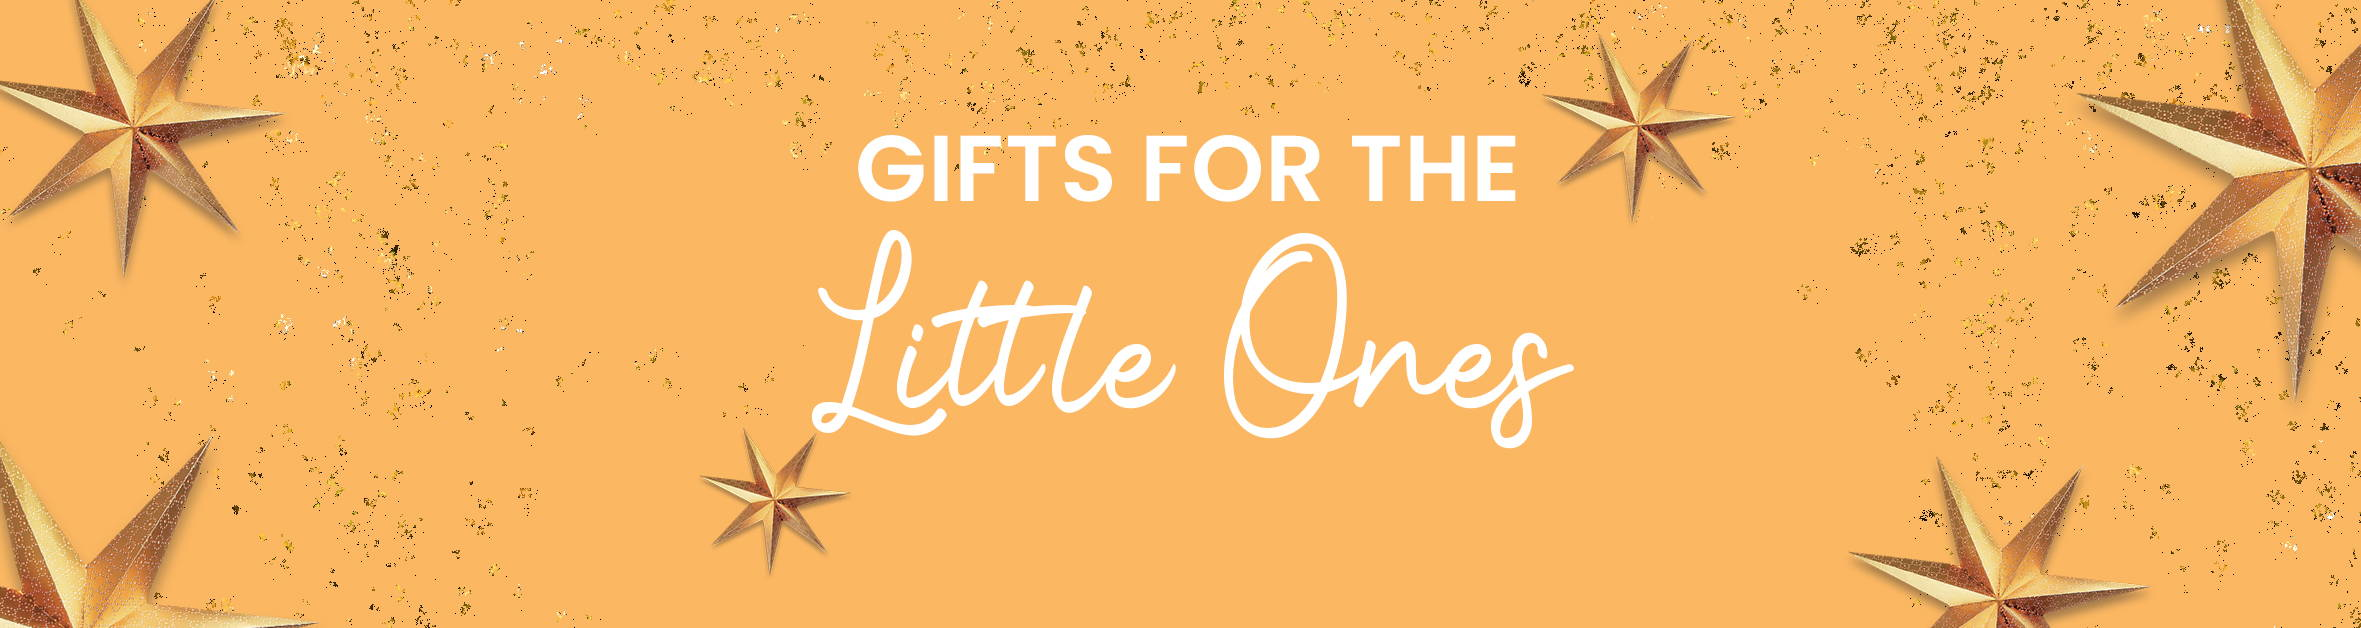 Holiday Gifts for the Little Ones